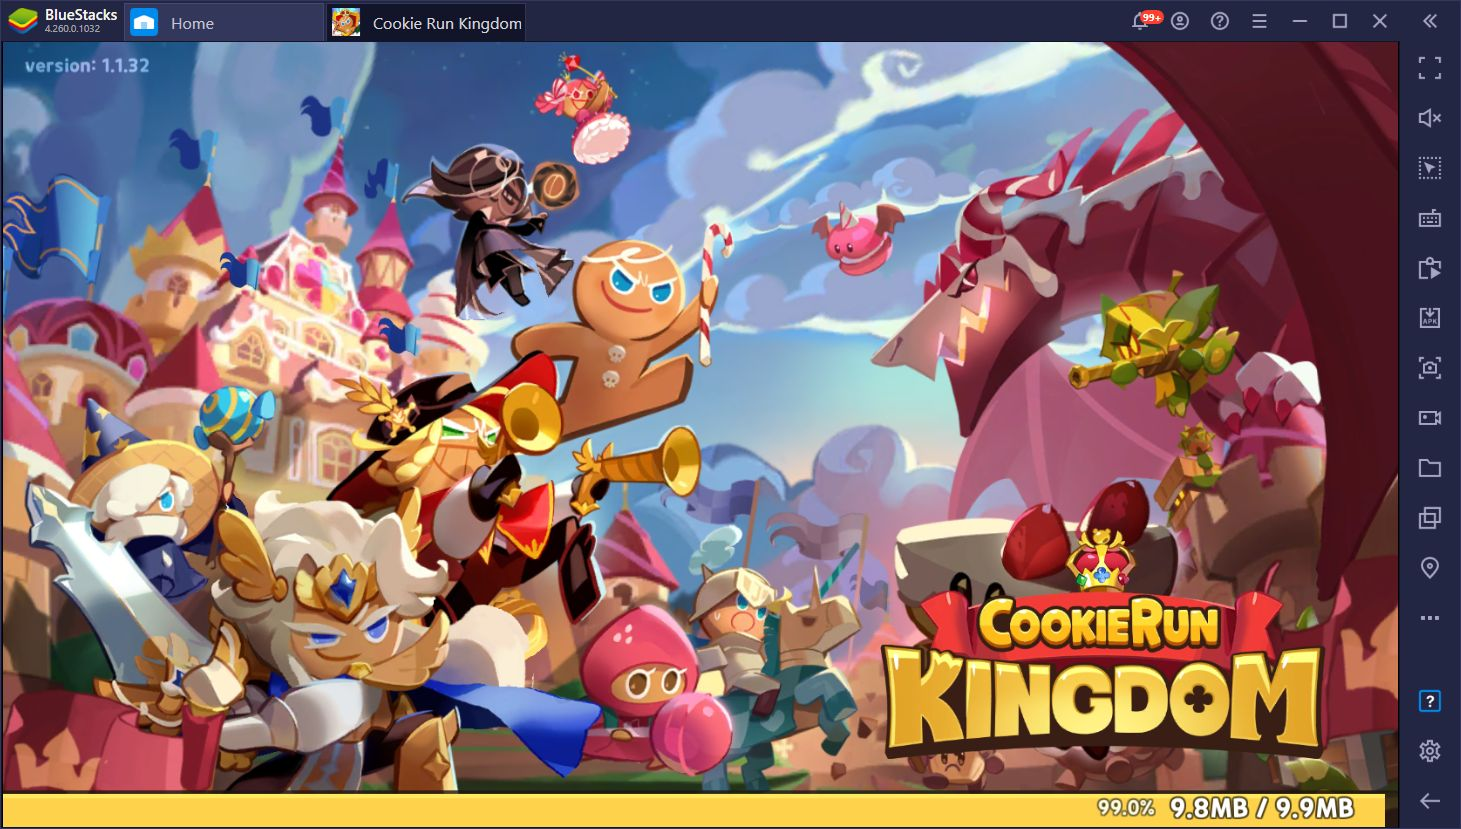 Cookie Run: Kingdom Beginner's Guide With Tips, Tricks, and Strategies for Newcomers